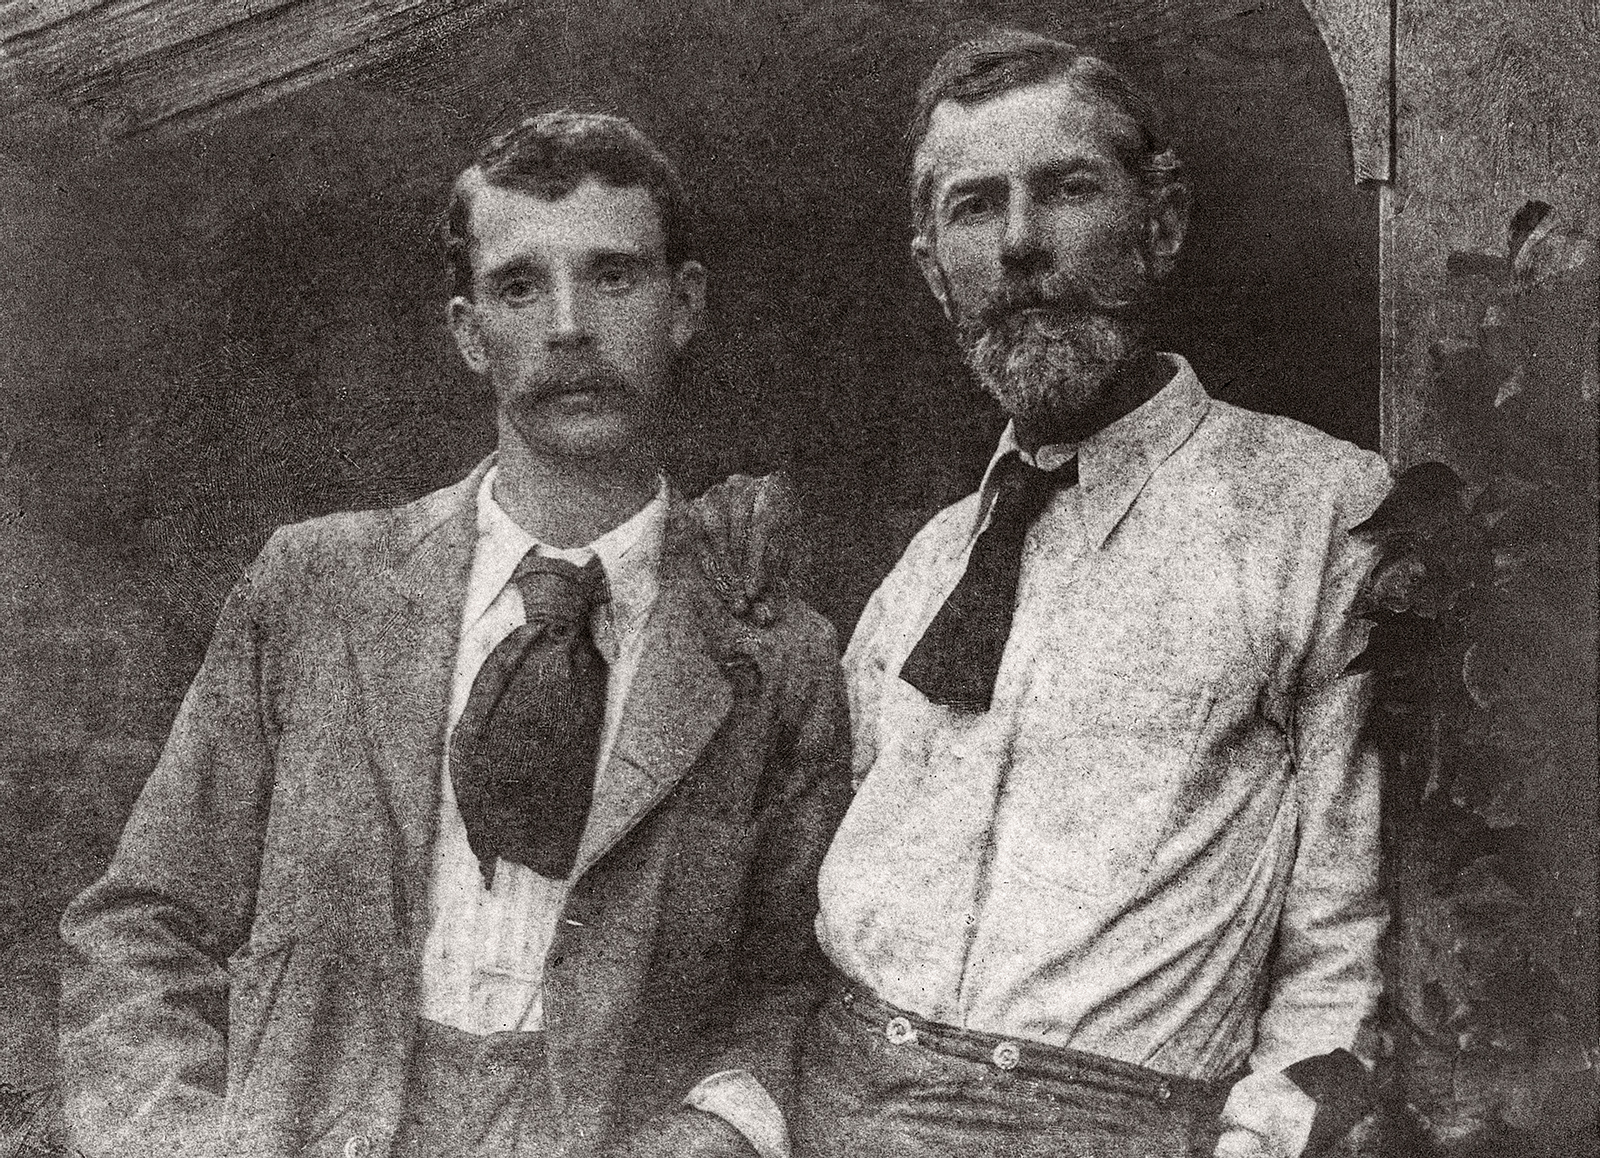 Edward Carpenter and George Merrill (left)